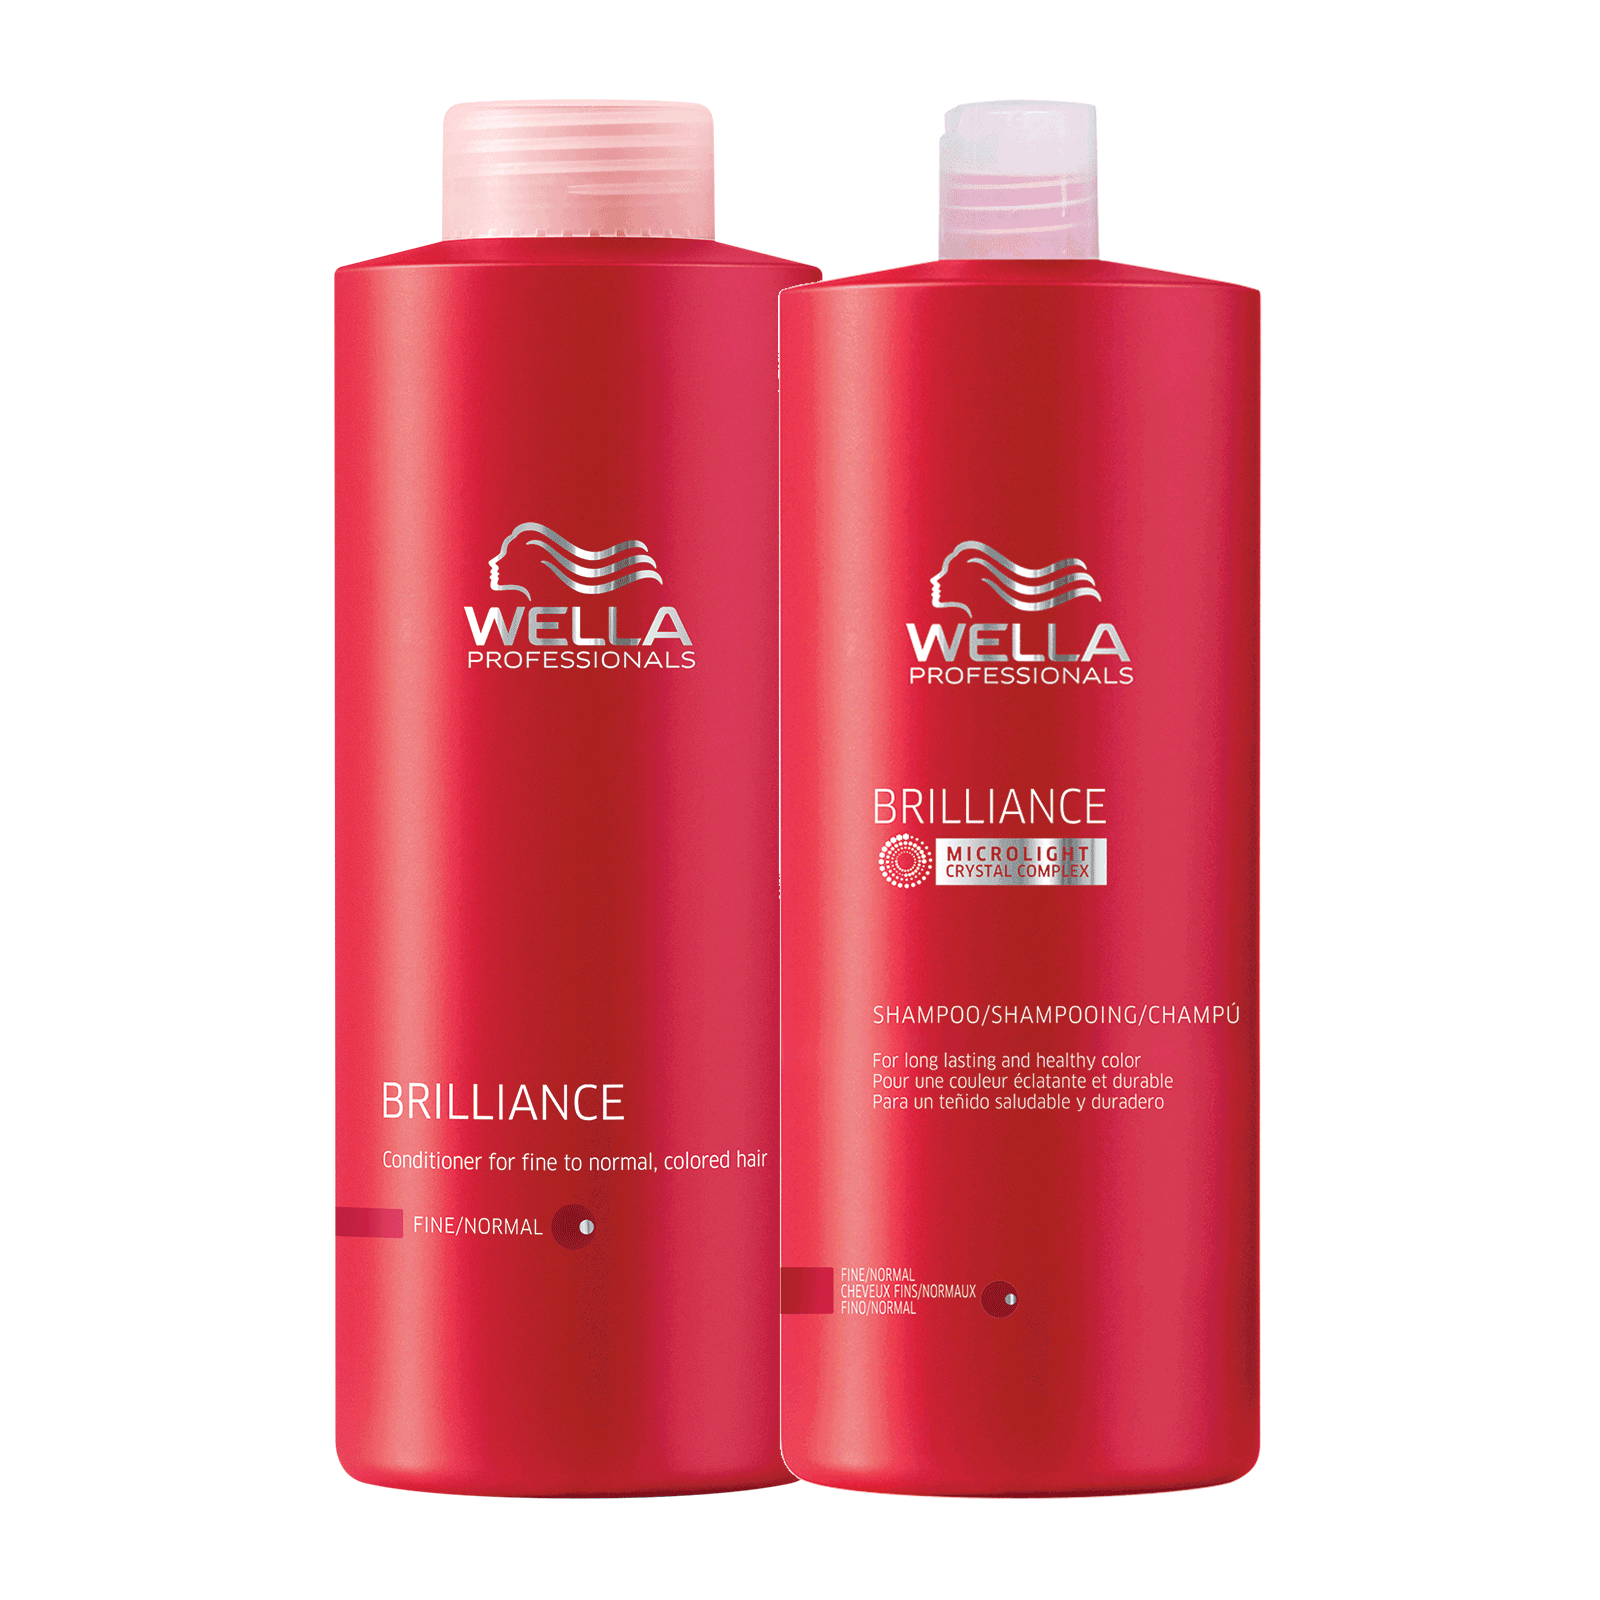 Brilliance Shampoo, Conditioner for Fine Color-Treated Hair